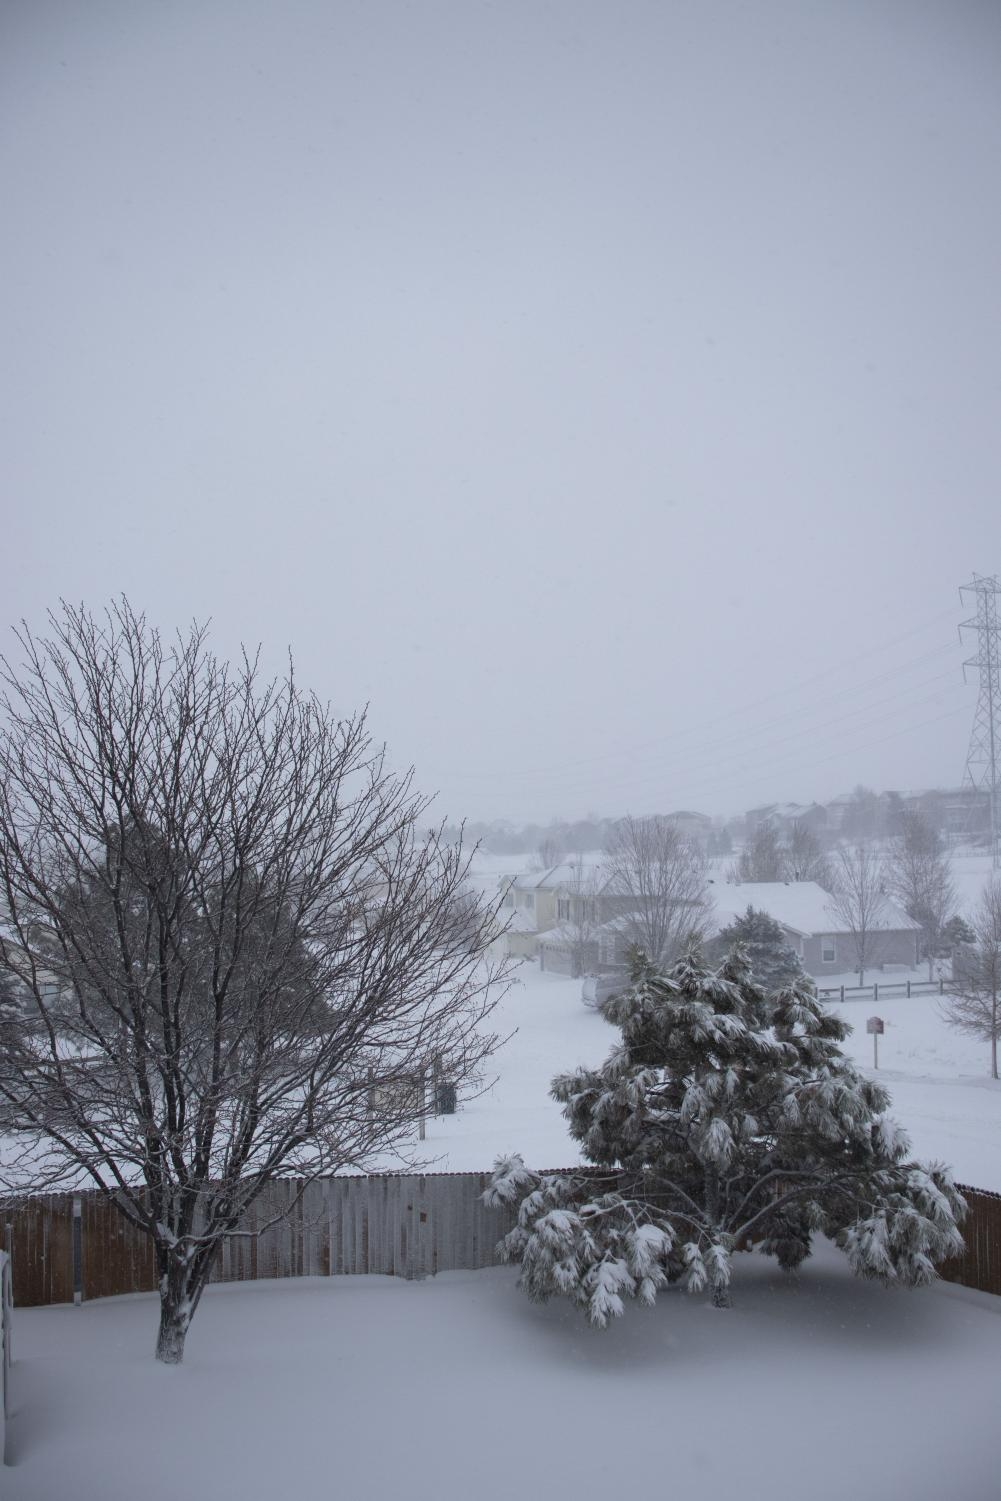 A gorgeous winter view during the March 2019 blizzard that buried Denver and surrounding areas.